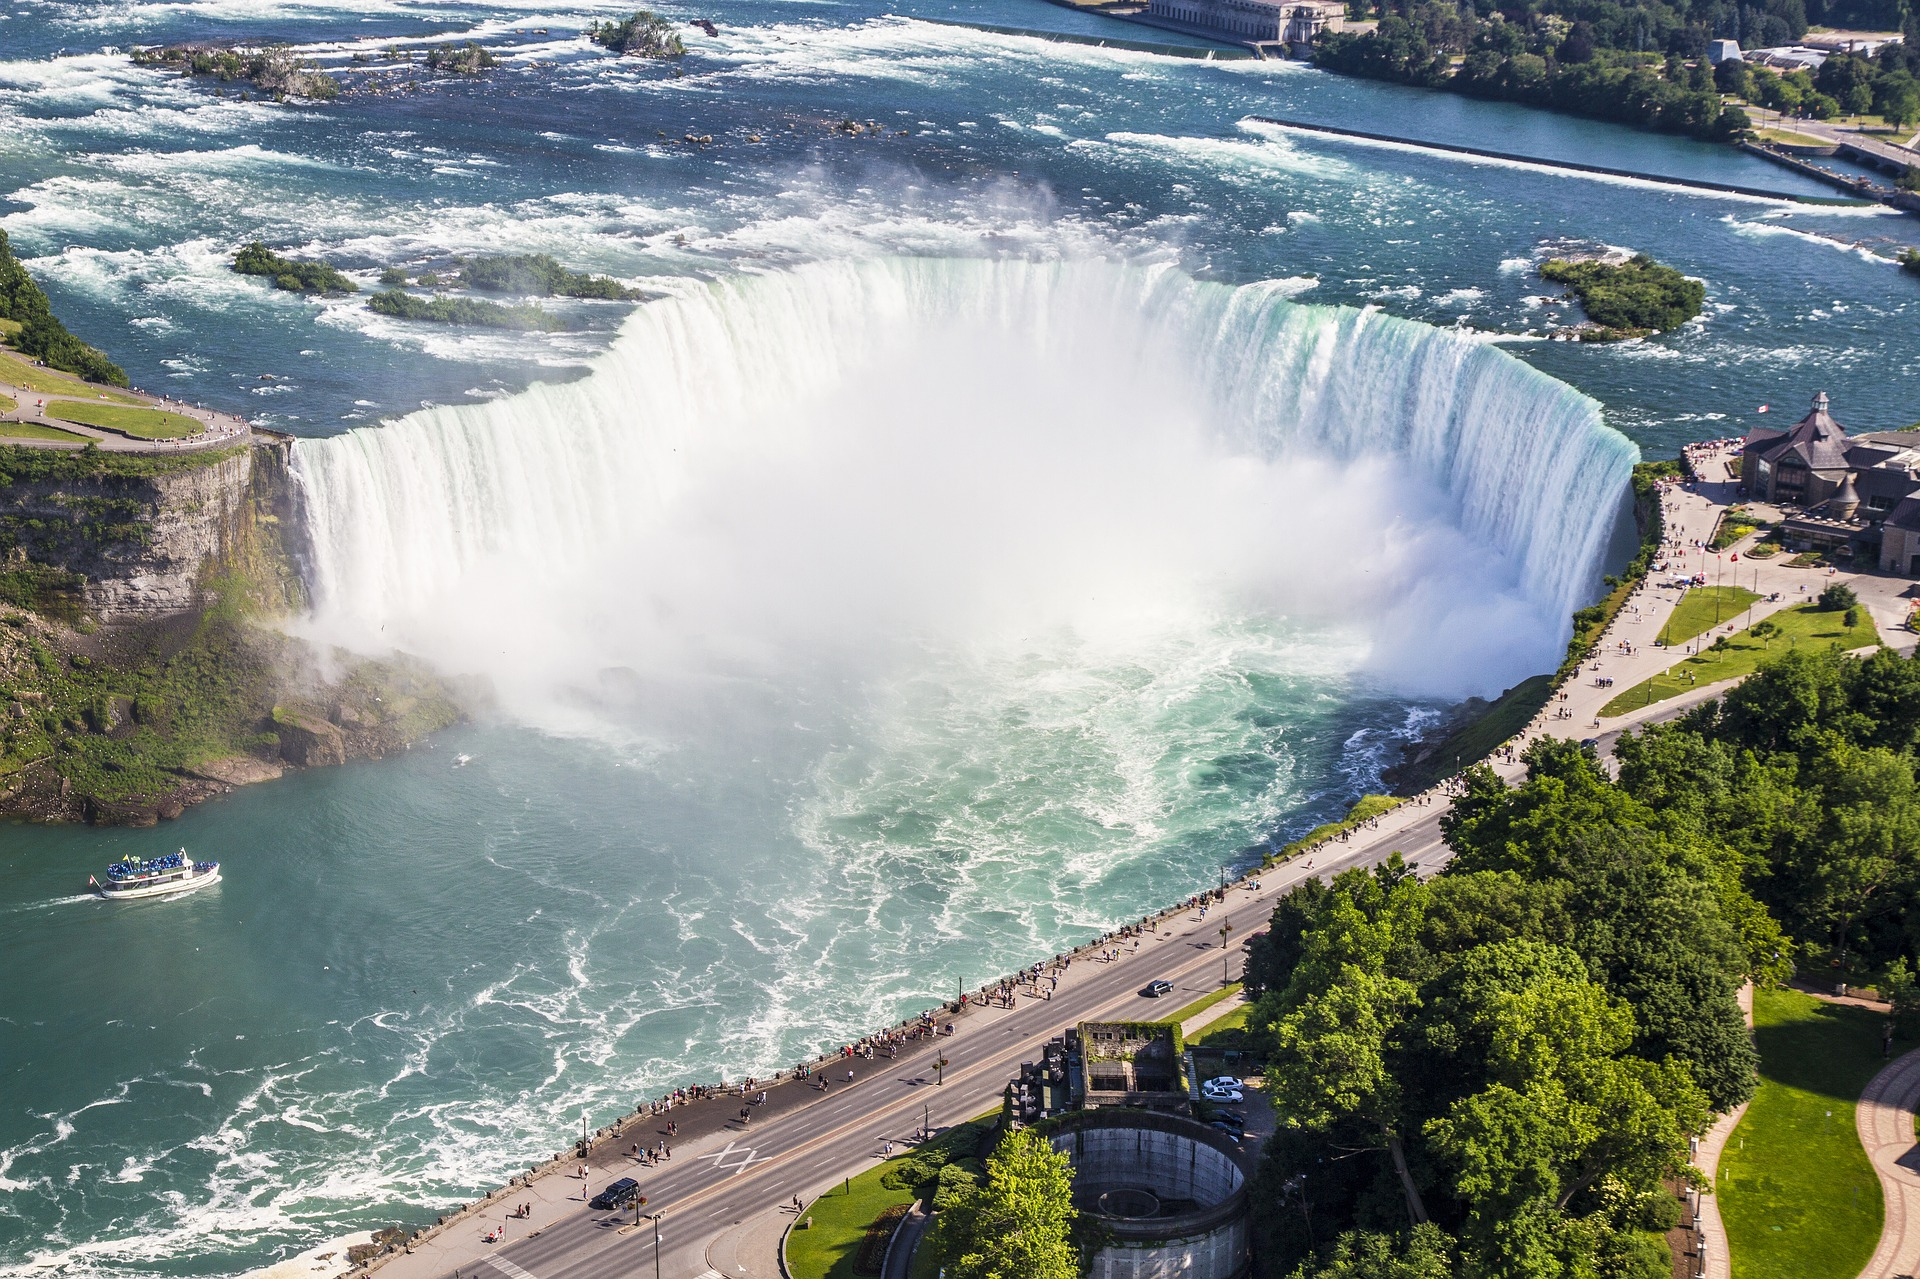 Niagara Falls, between the province of Ontario, Cananda and the state of New York, USA